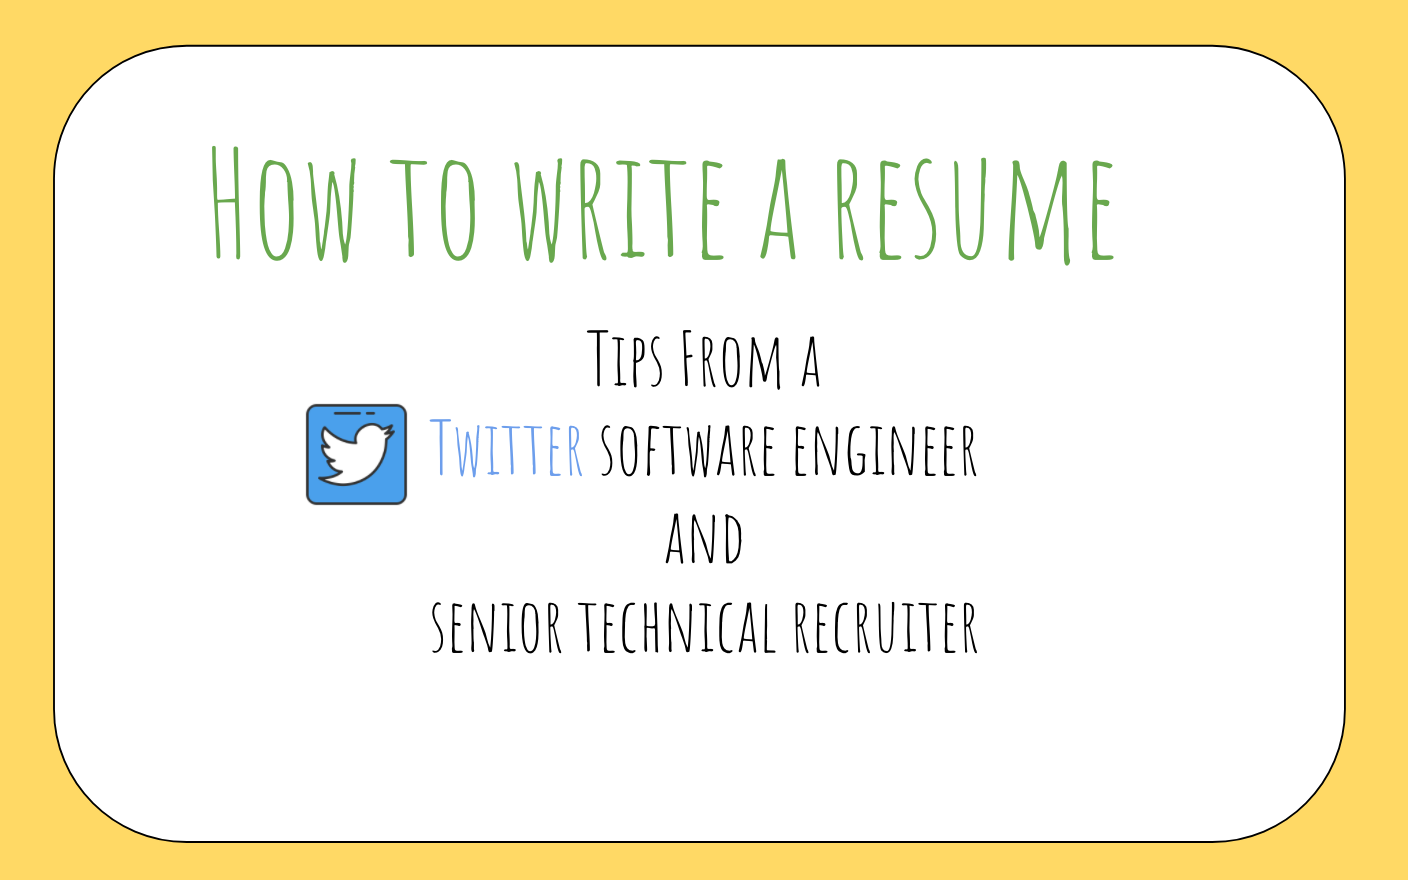 How to write a great resume for software engineers freecodecamp for those of you who are starting out on your job search and have questions about how to prepare a great rsum that can get your foot in the door thecheapjerseys Choice Image